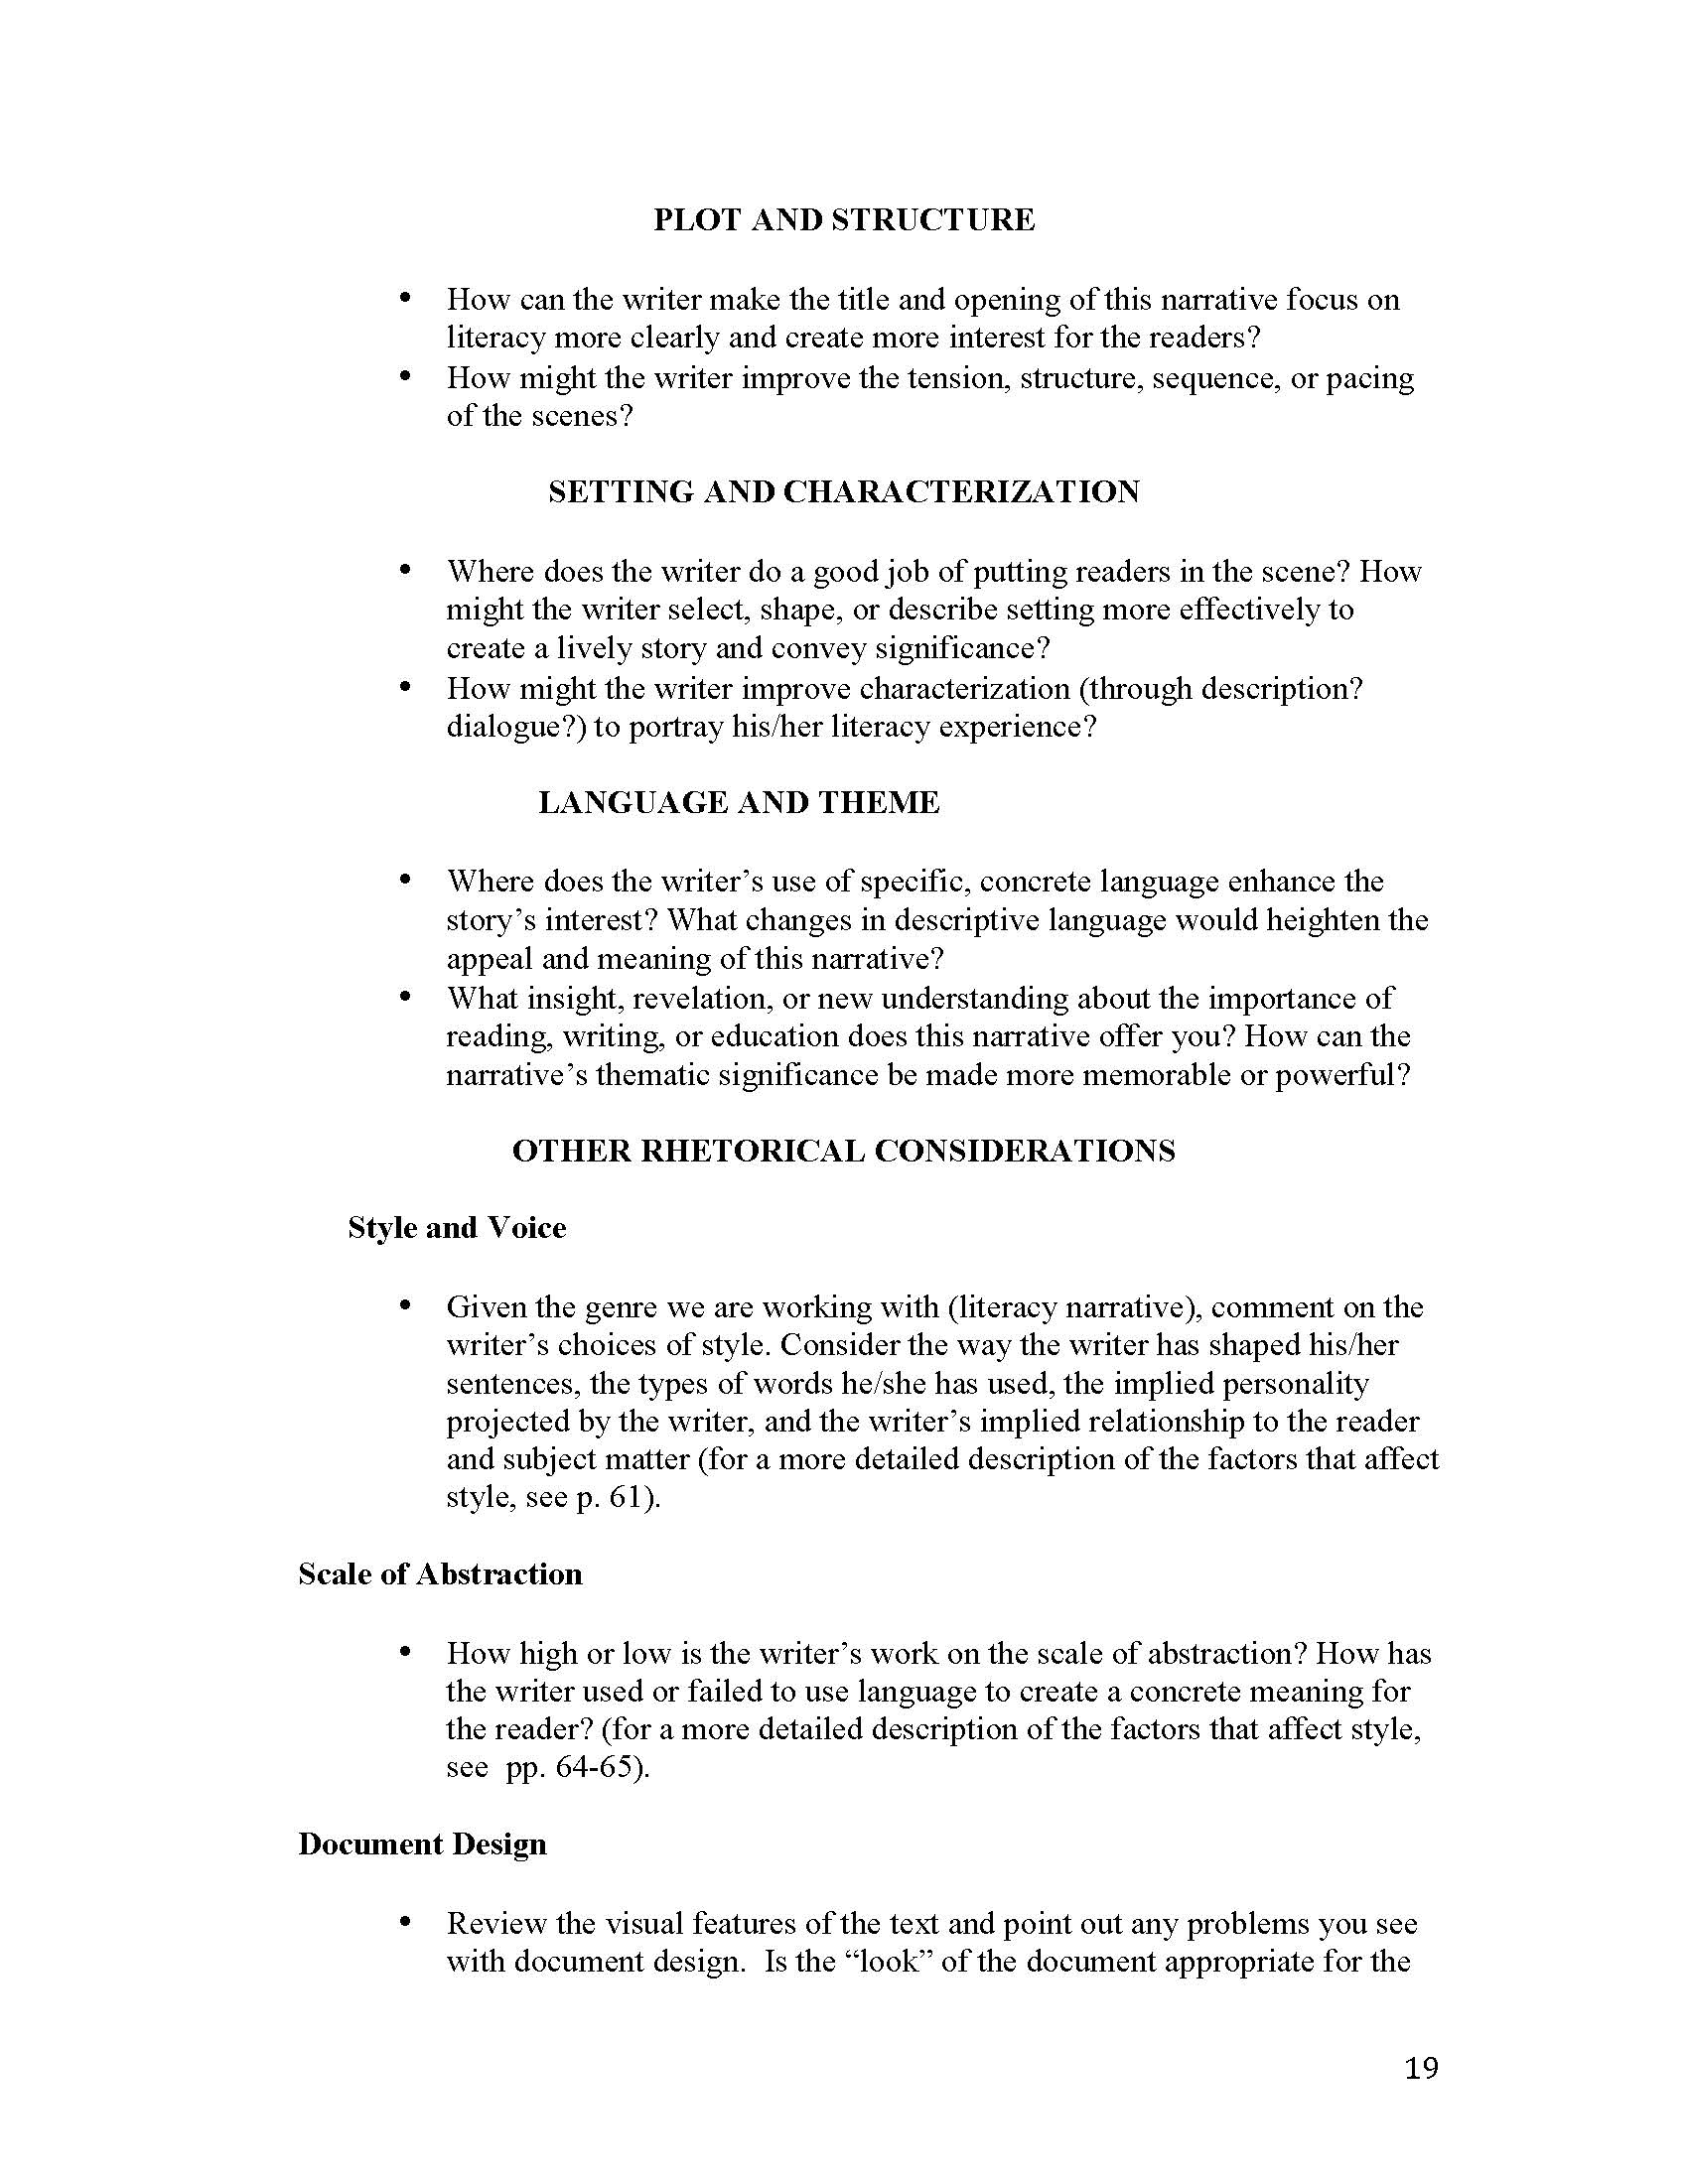 018 Example Of Narrative Essay Unit 1 Literacy Instructor Copy Page 19 Magnificent About Yourself Introduction Friendship Full